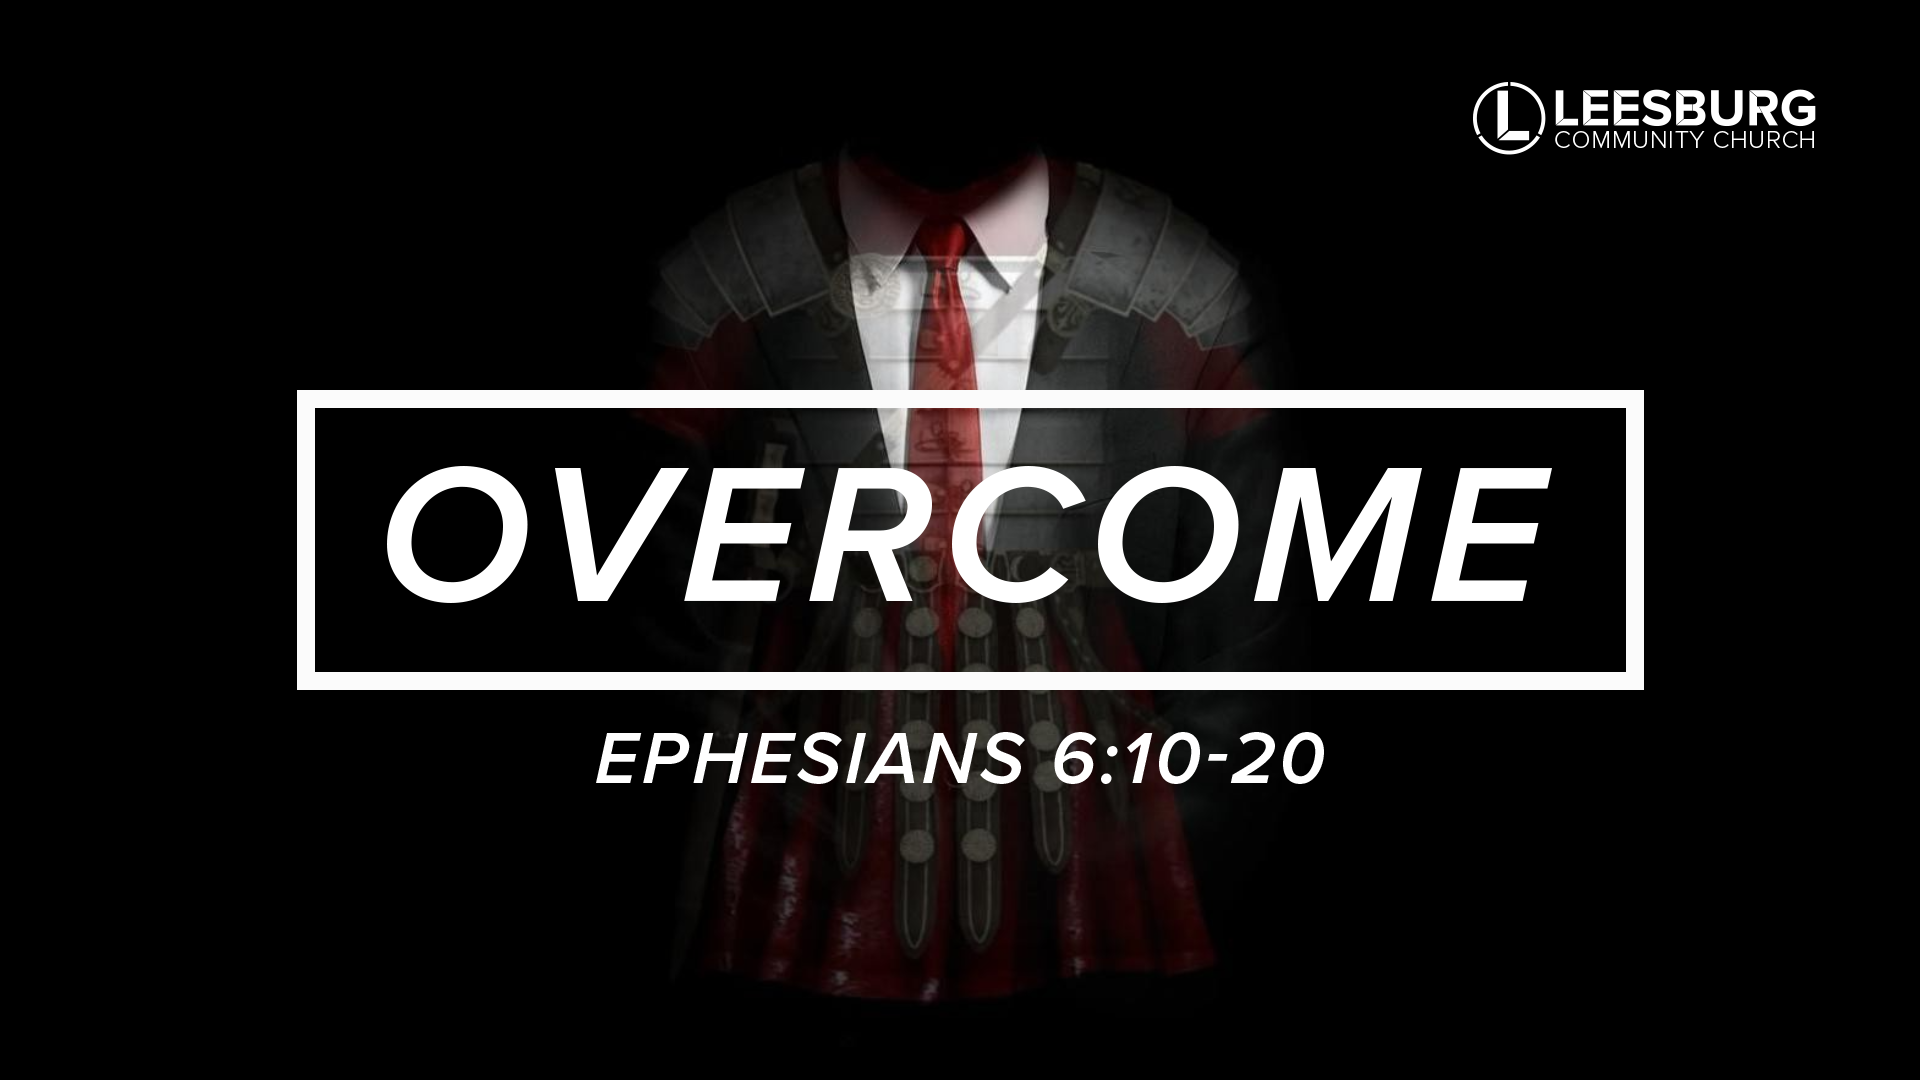 In our Overcome series we will take a closer examination of the Armor of God from Ephesians 6 and see how God has given each believer the tools to face any obstacle that life might throw our way and overcome it in the power of Christ.